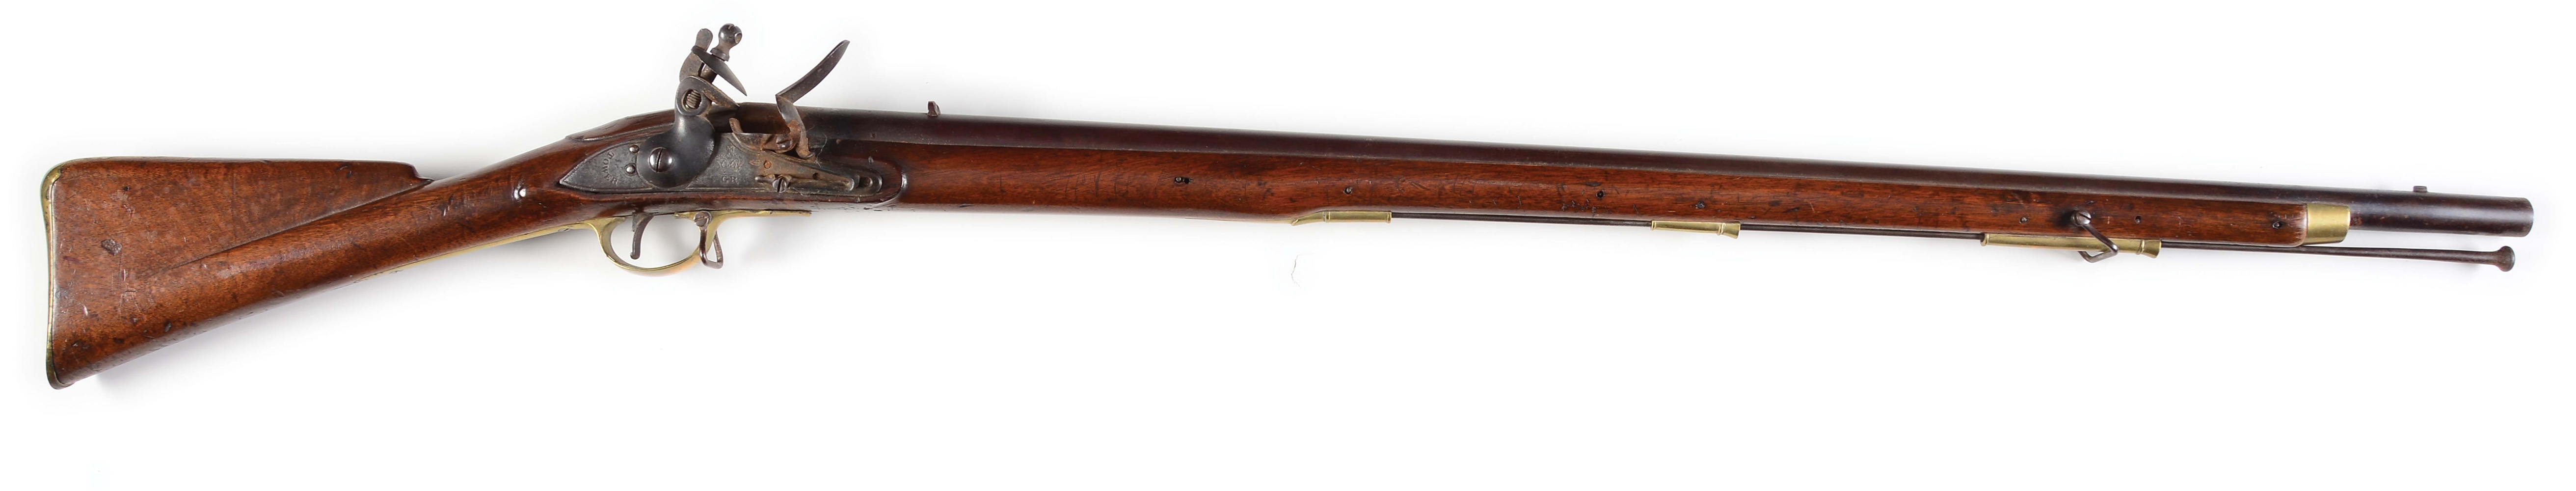 (A) BRITISH TOWER NEW LAND PATTERN FLINTLOCK MUSKET.